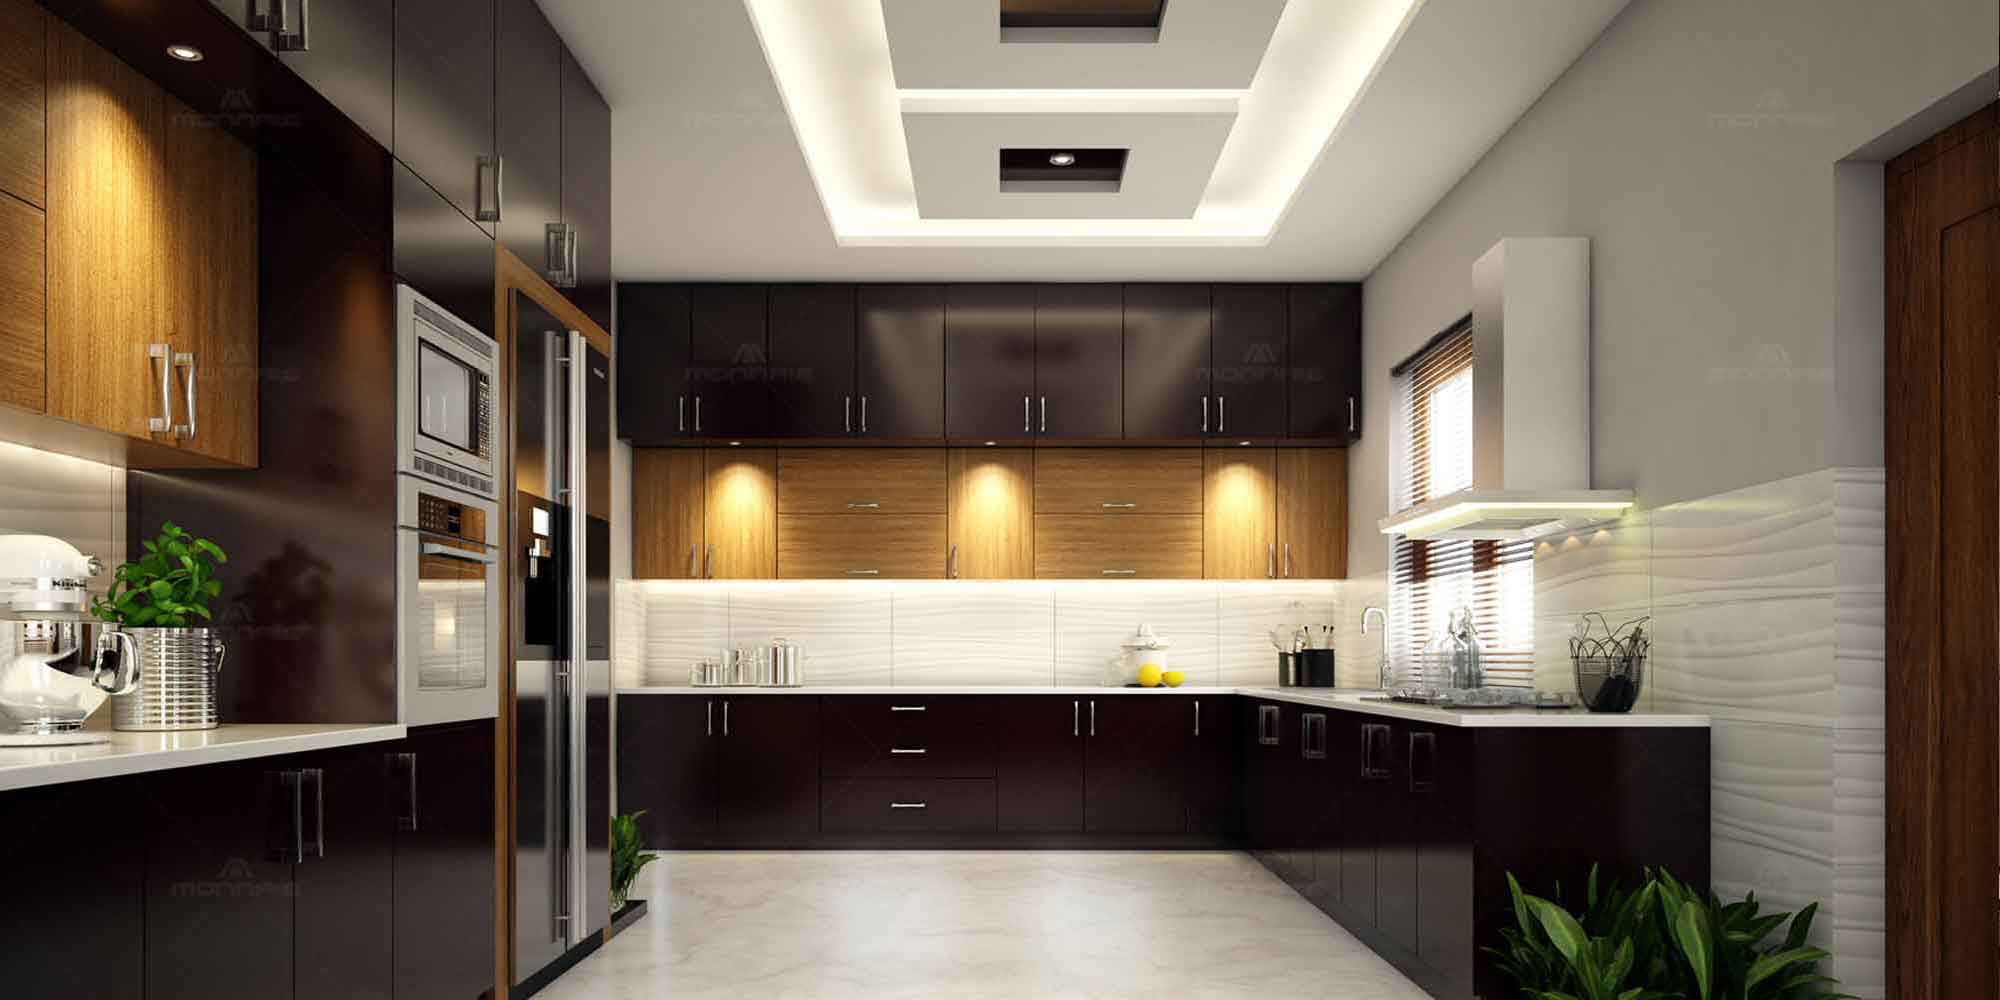 Interior Designers in Kochi  Modular kitchen in Kochi, Kerala